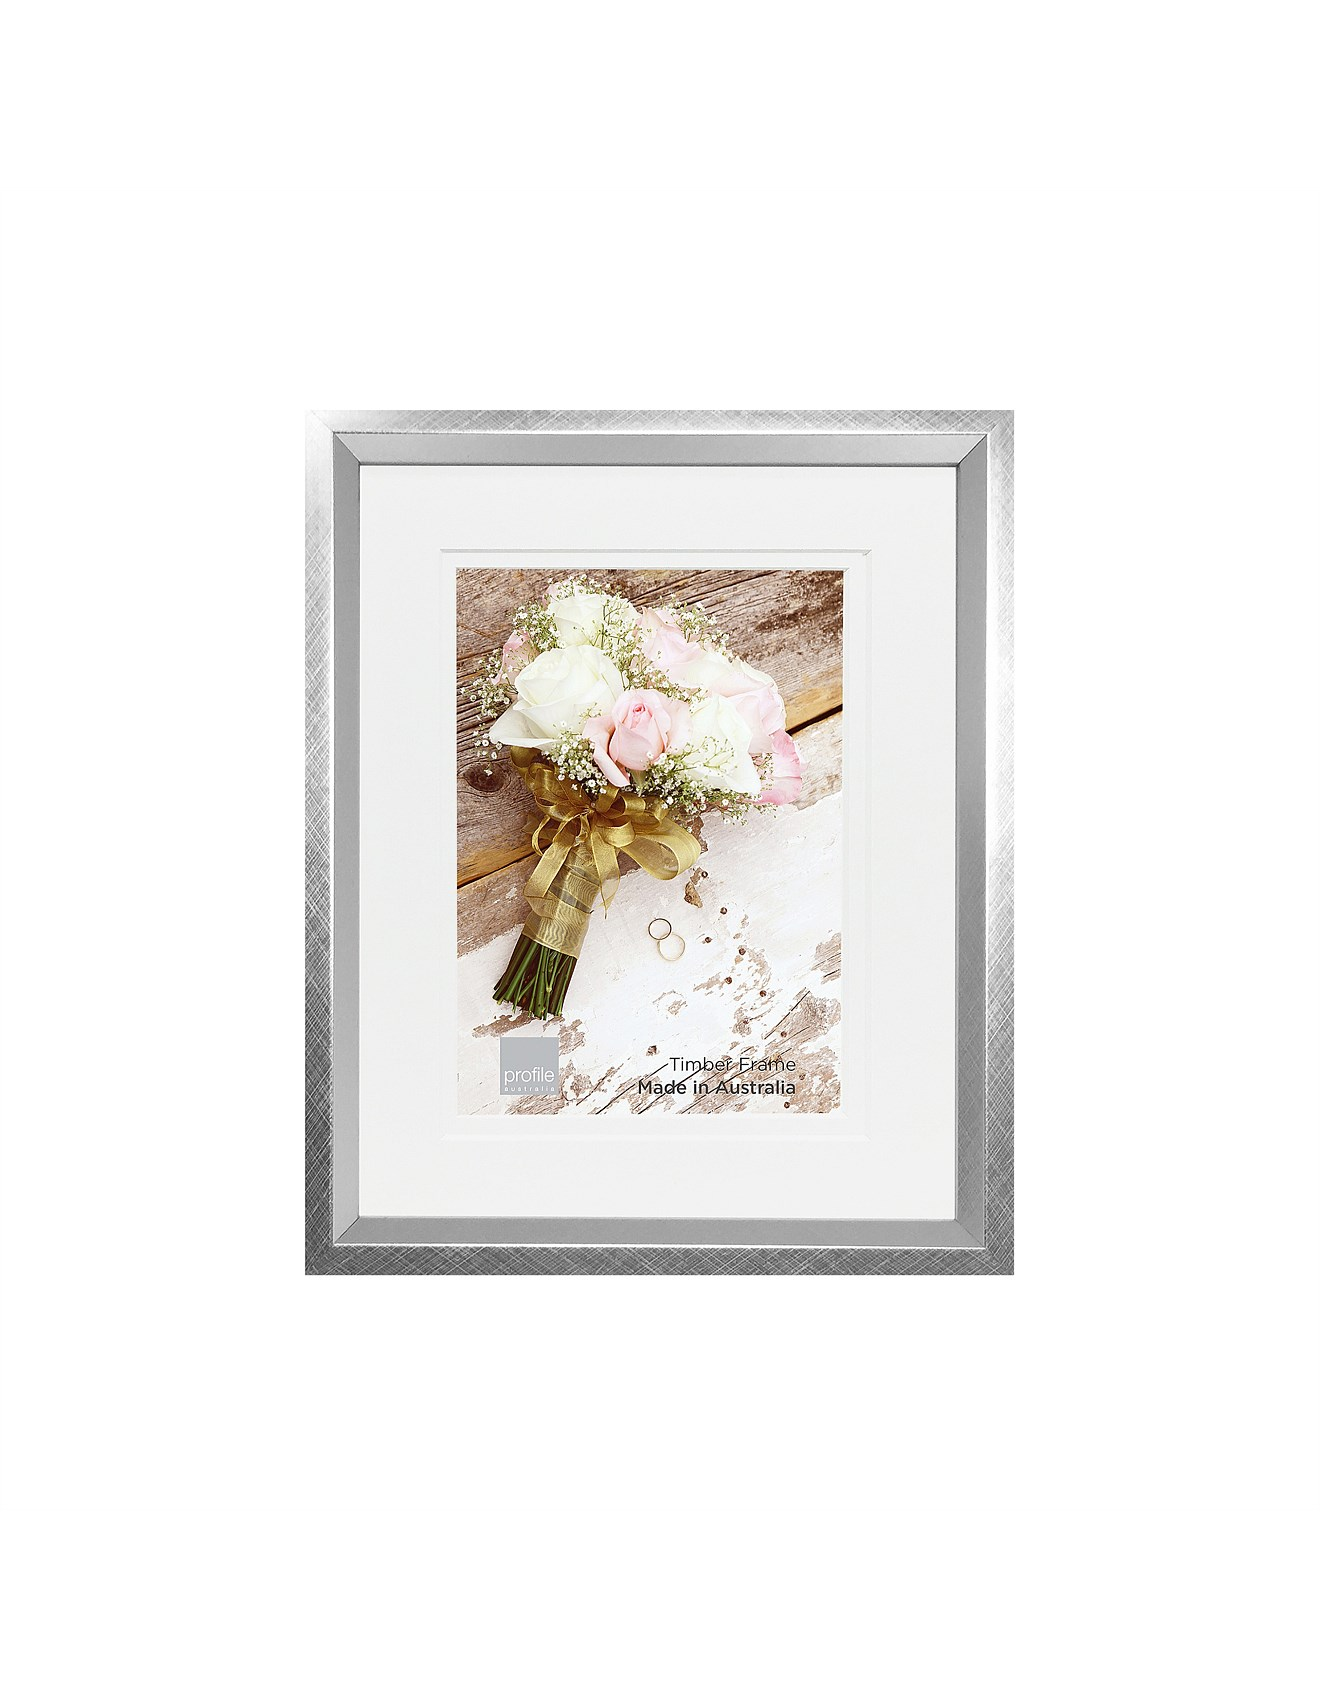 Photo Frames Albums Encore Bevel Silver 8x105x7